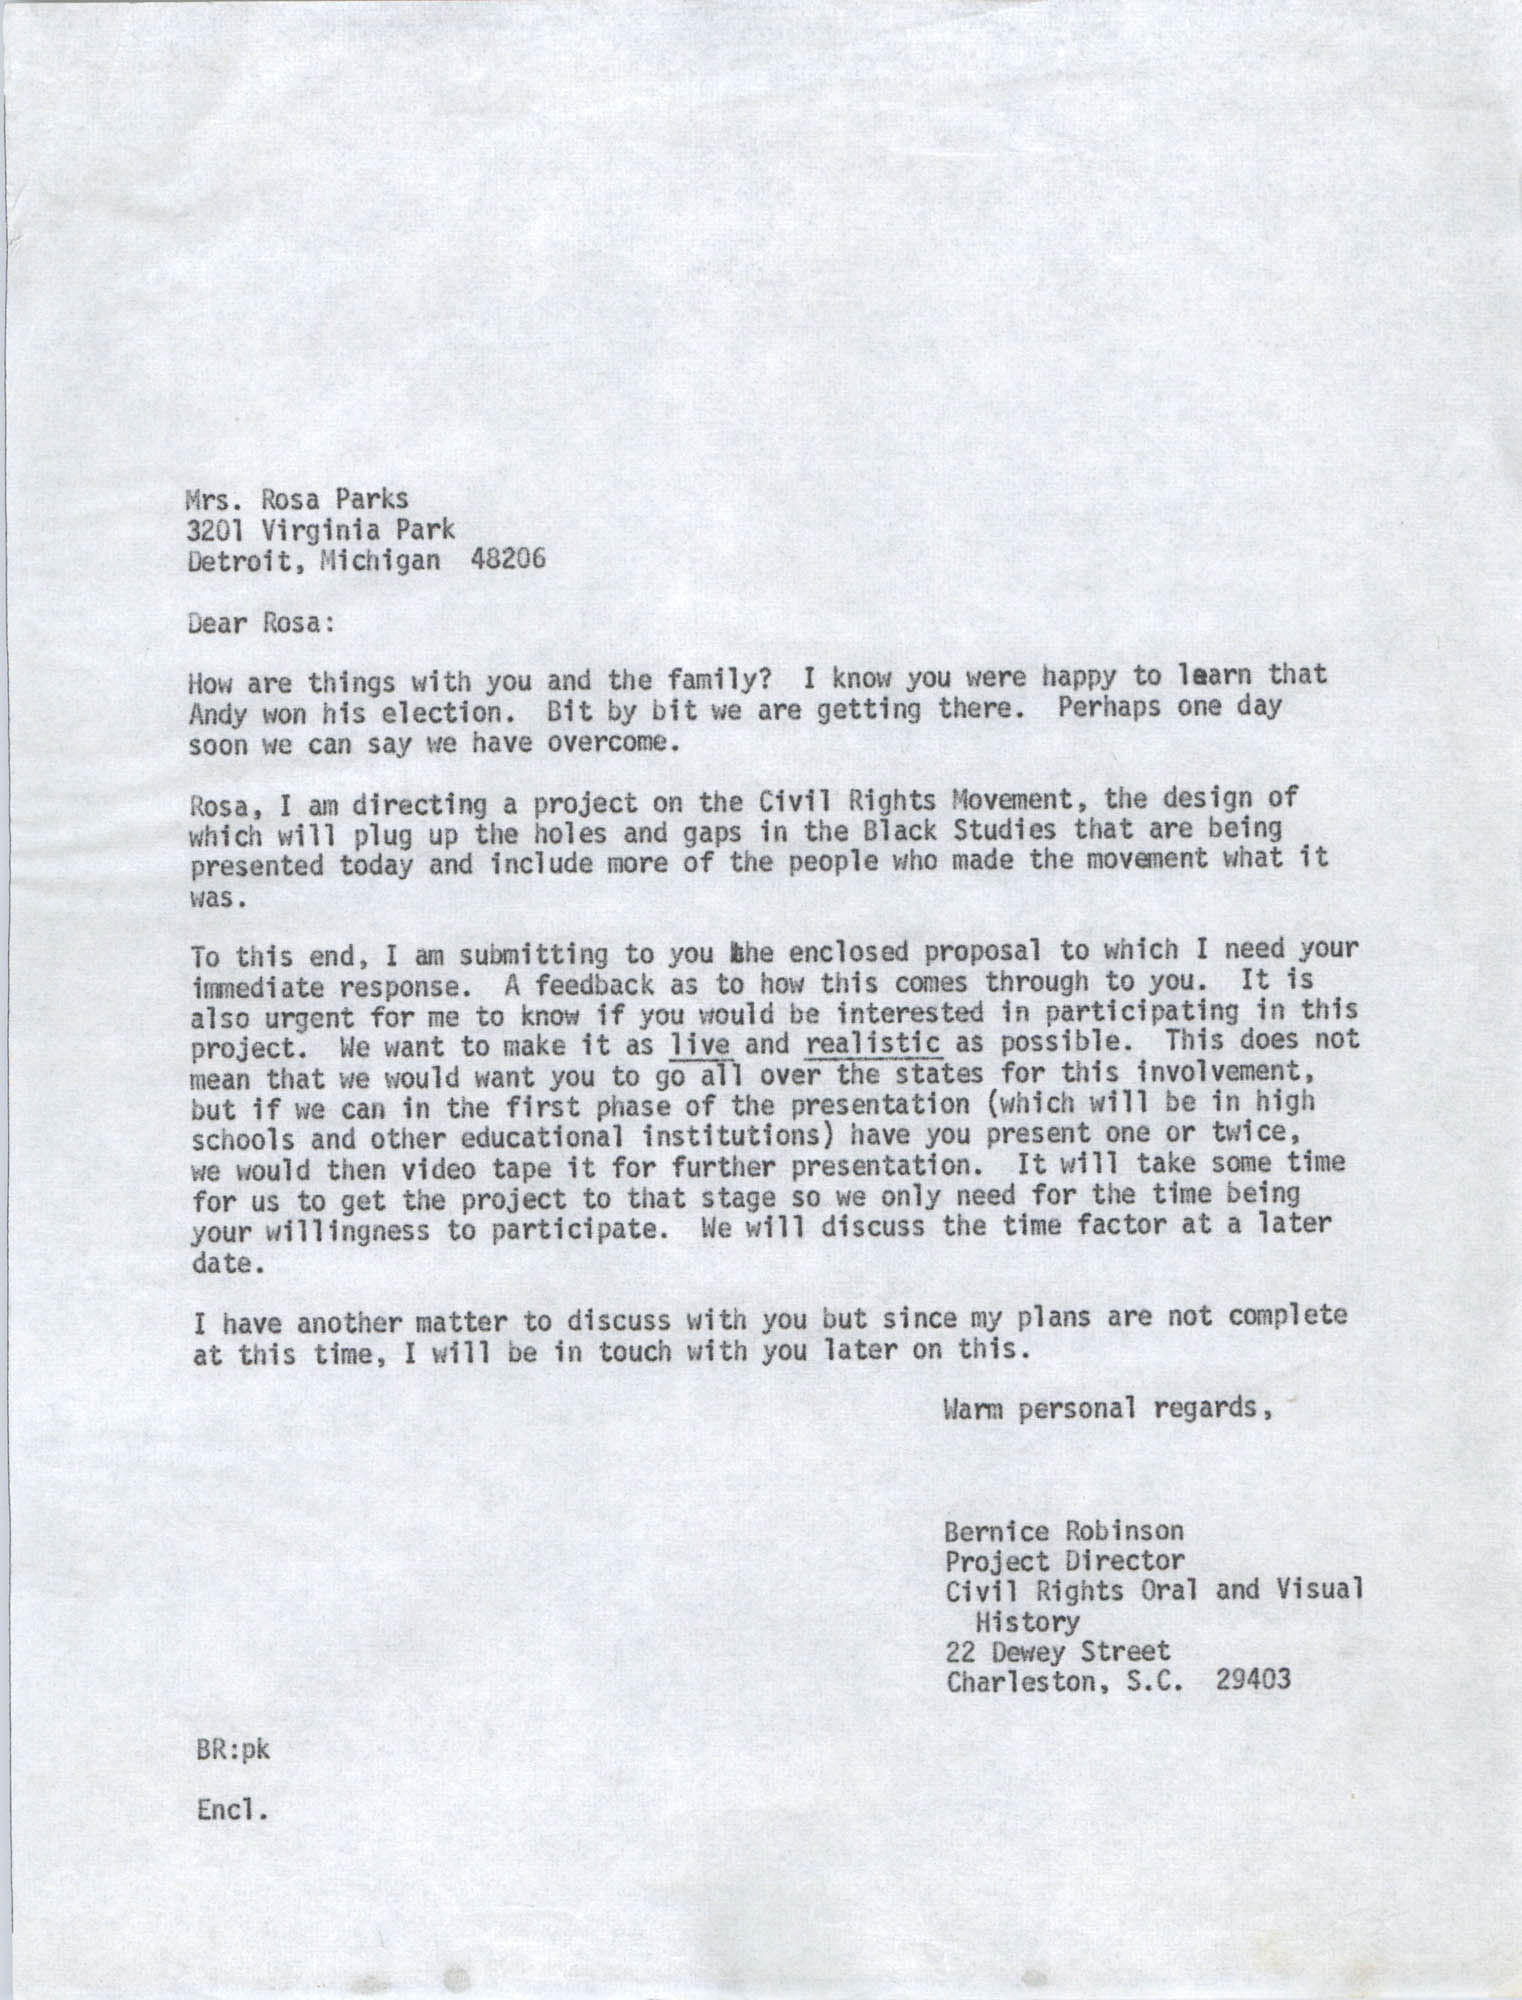 Letter from Bernice Robinson to Rosa Parks, May 8, 1973, Draft